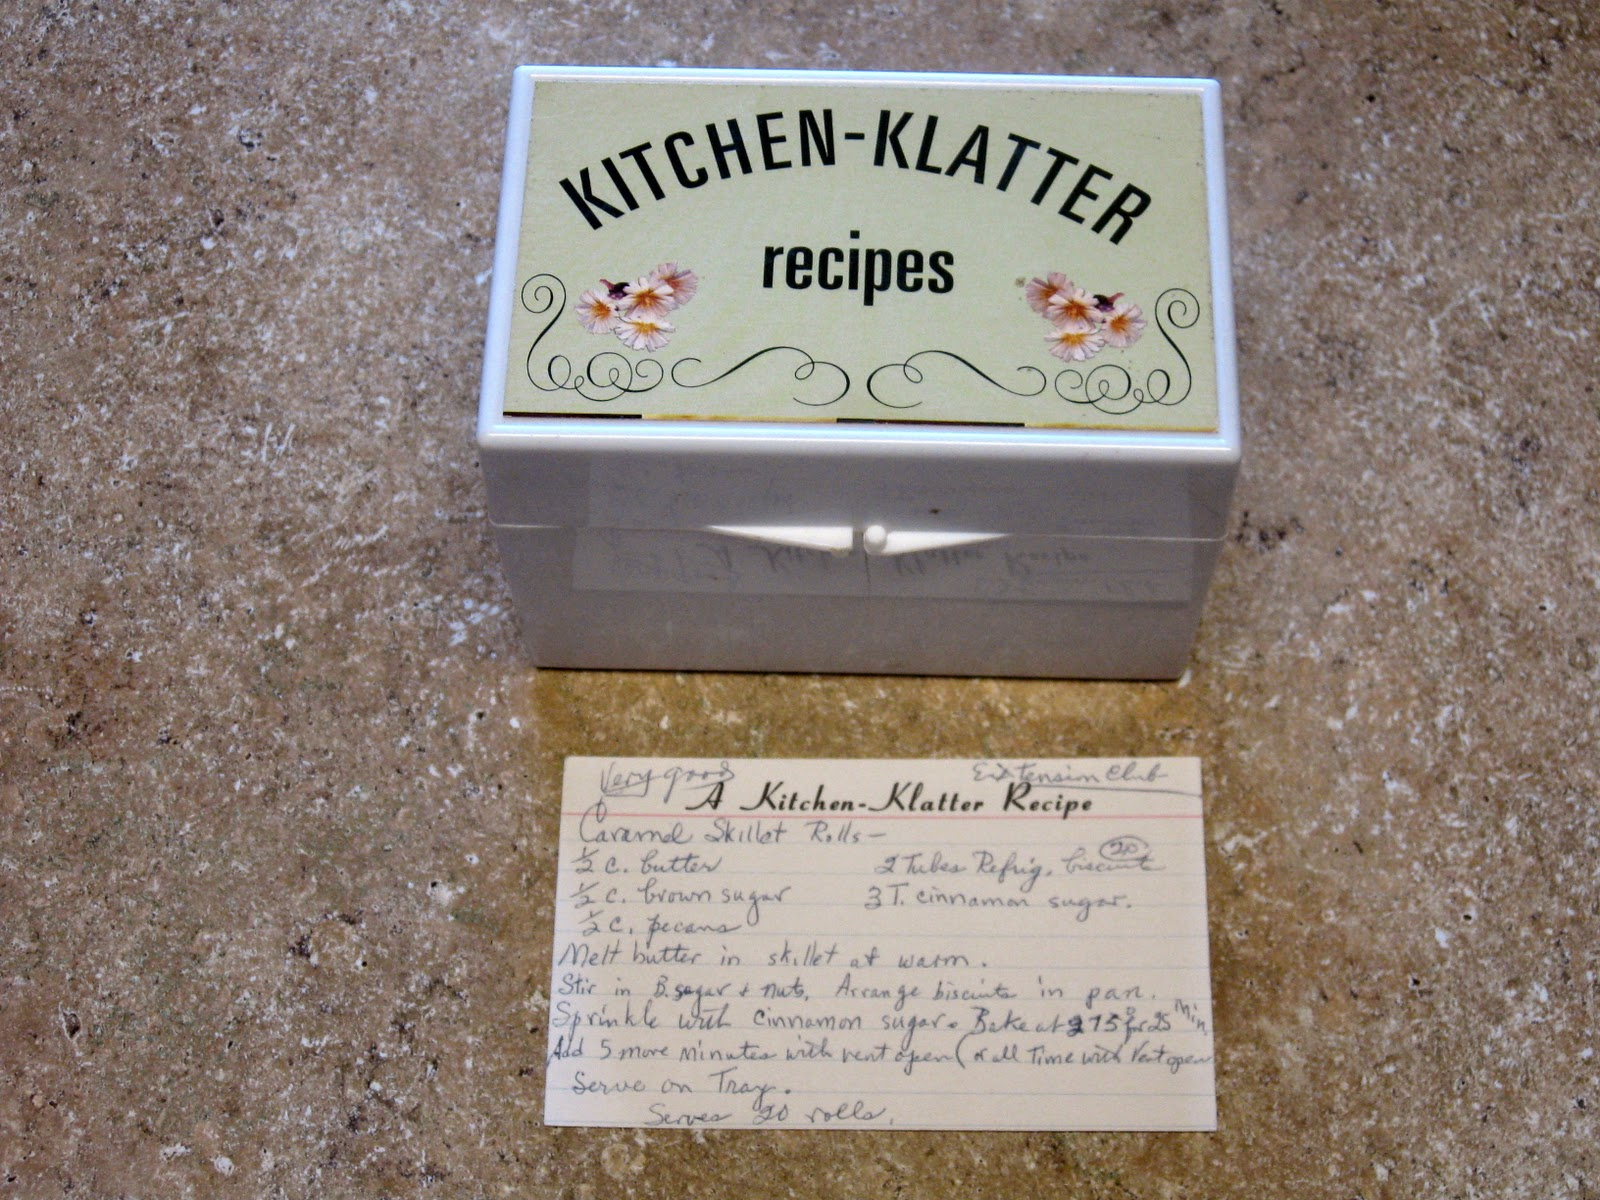 Counting My Blessings ~: The Return of Kitchen Klatter